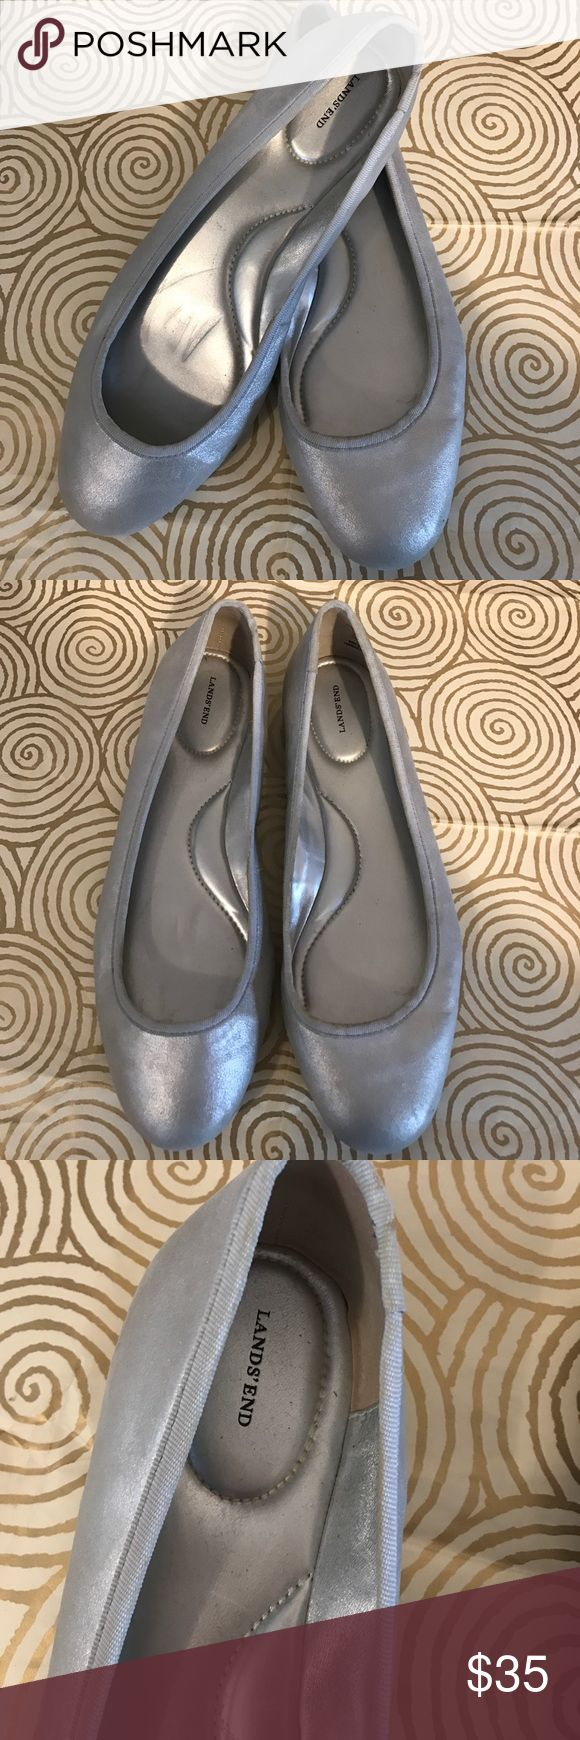 🇺🇸 Lands Ends size 11 silver ballet flats Lands Ends size 11 silver ballet flats. Gently used some wear showing in shoes and underside, as clearly shown in pictures. They are standard width which is now too narrow for me which is why I'm selling. Otherwise very comfortable! Lands' End Shoes Flats & Loafers